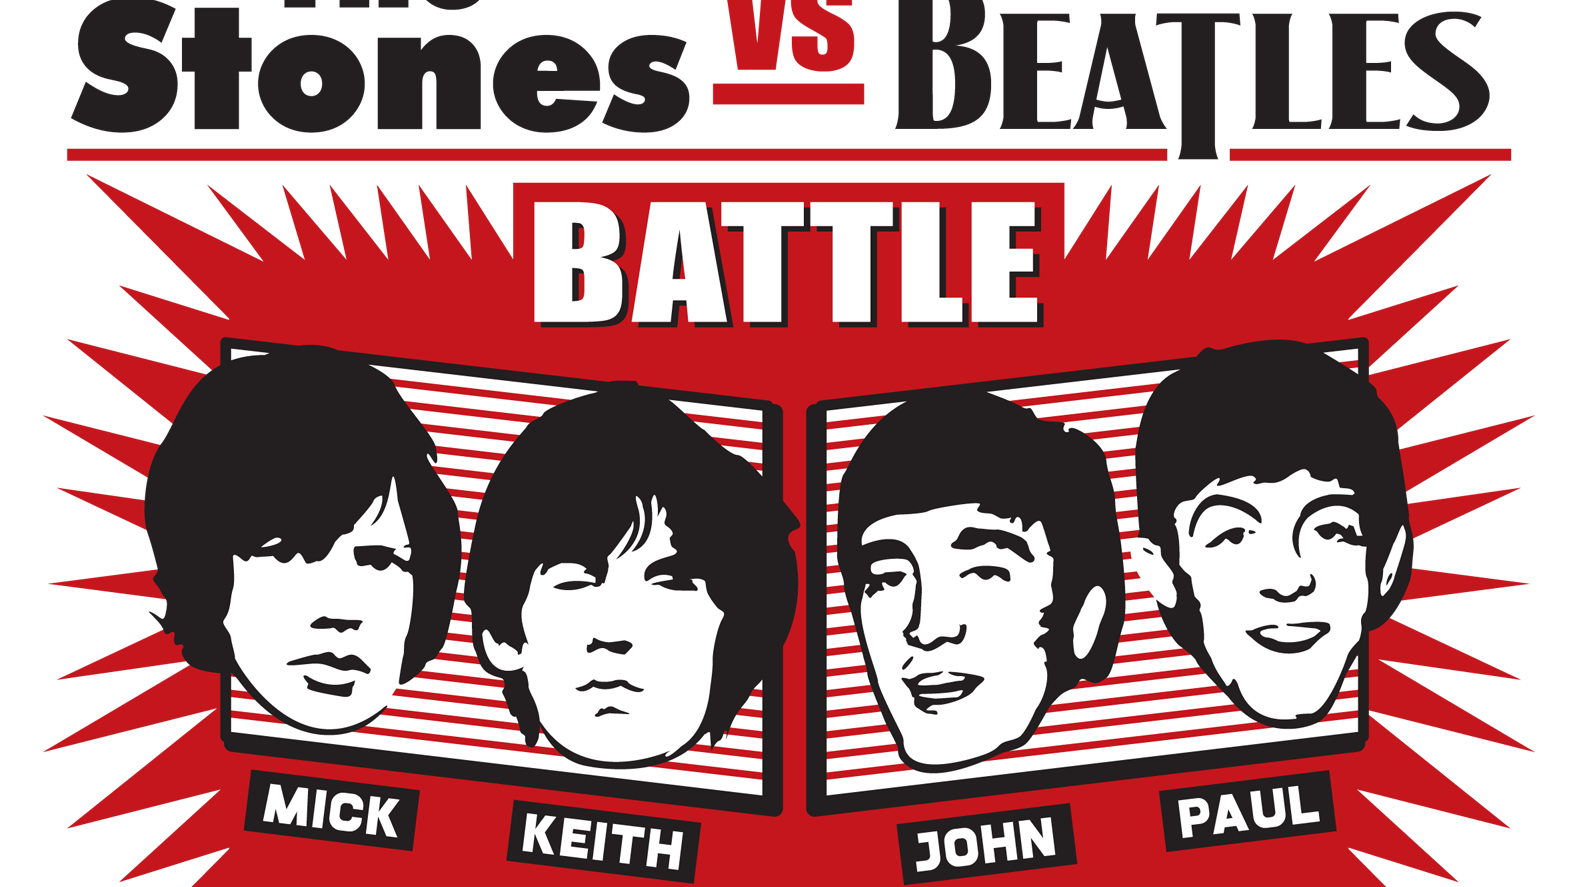 The Stones vs The Beatles Battle - Keith.Mick.John.Paul - (fotograaf onbekend) - liggend 3.png